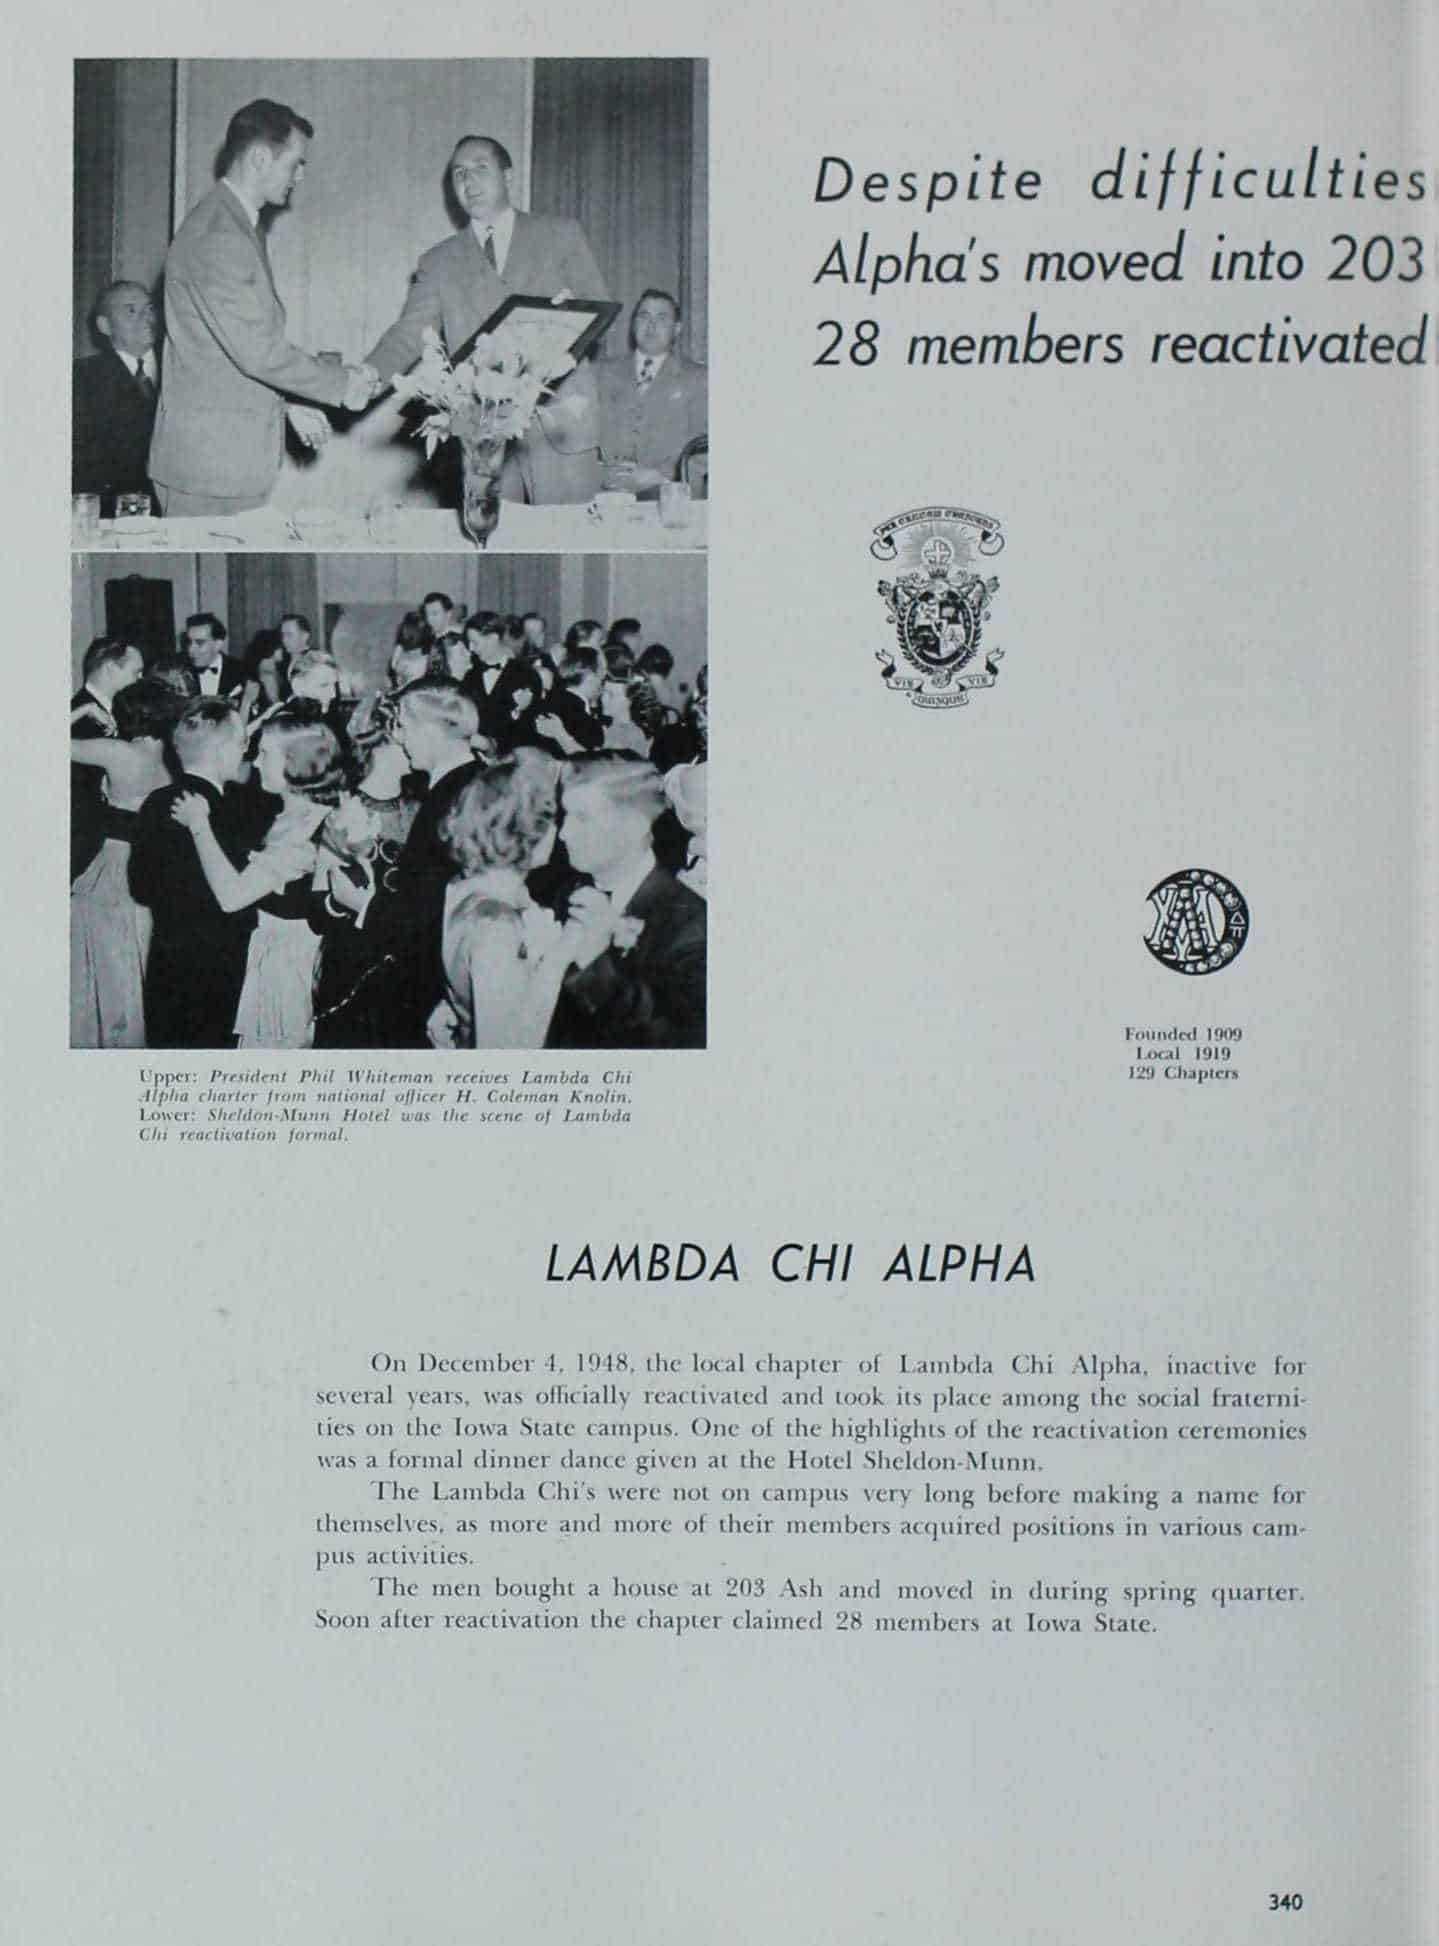 1949 Iowa State Yearbook p.1